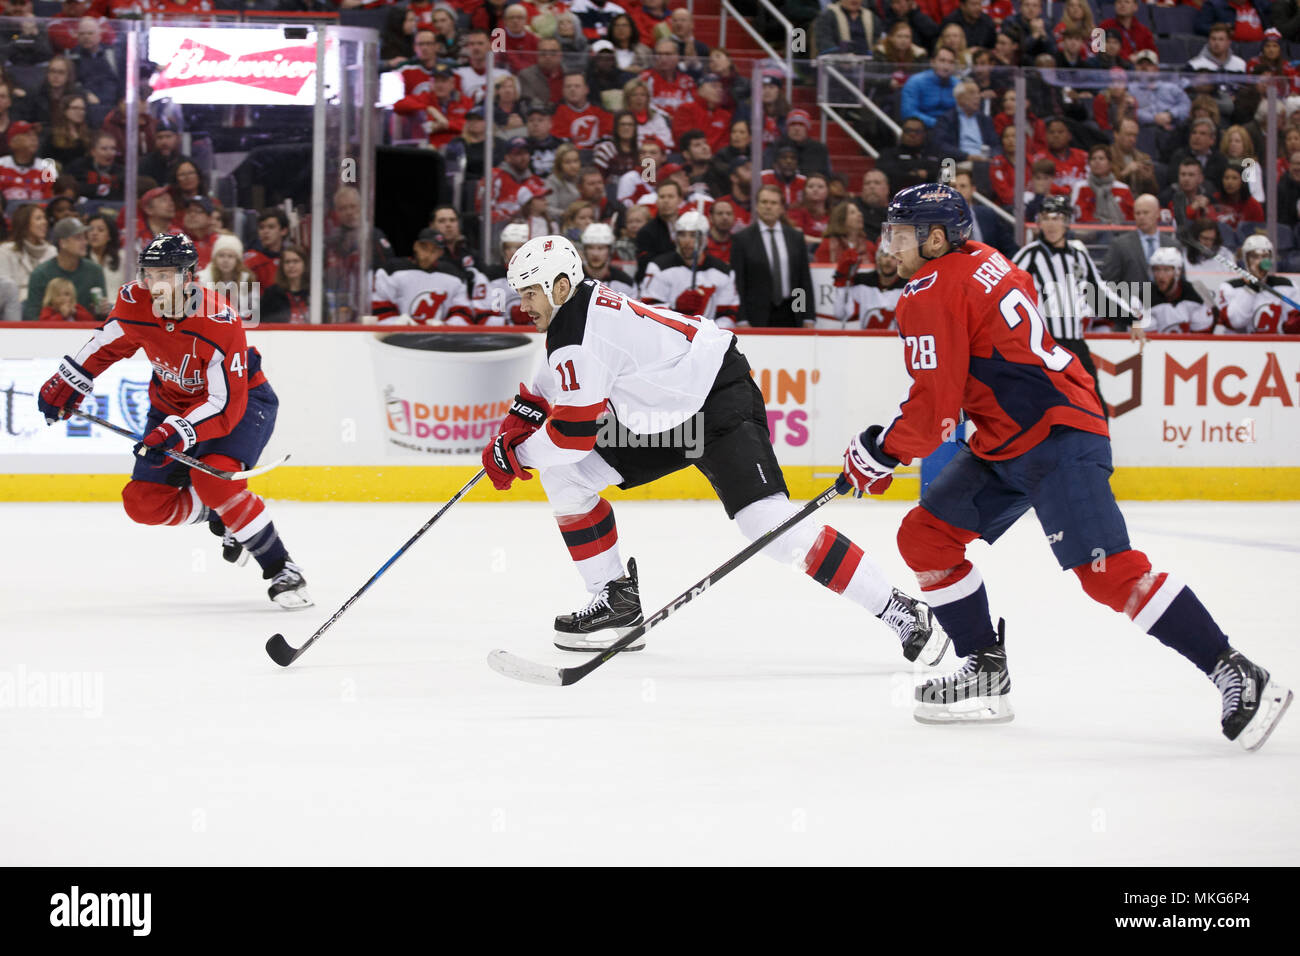 New Jersey Devils center Brian Boyle (11) carries the puck while chased by Washington Capitals defenseman Jakub Jerabek (28). Stock Photo